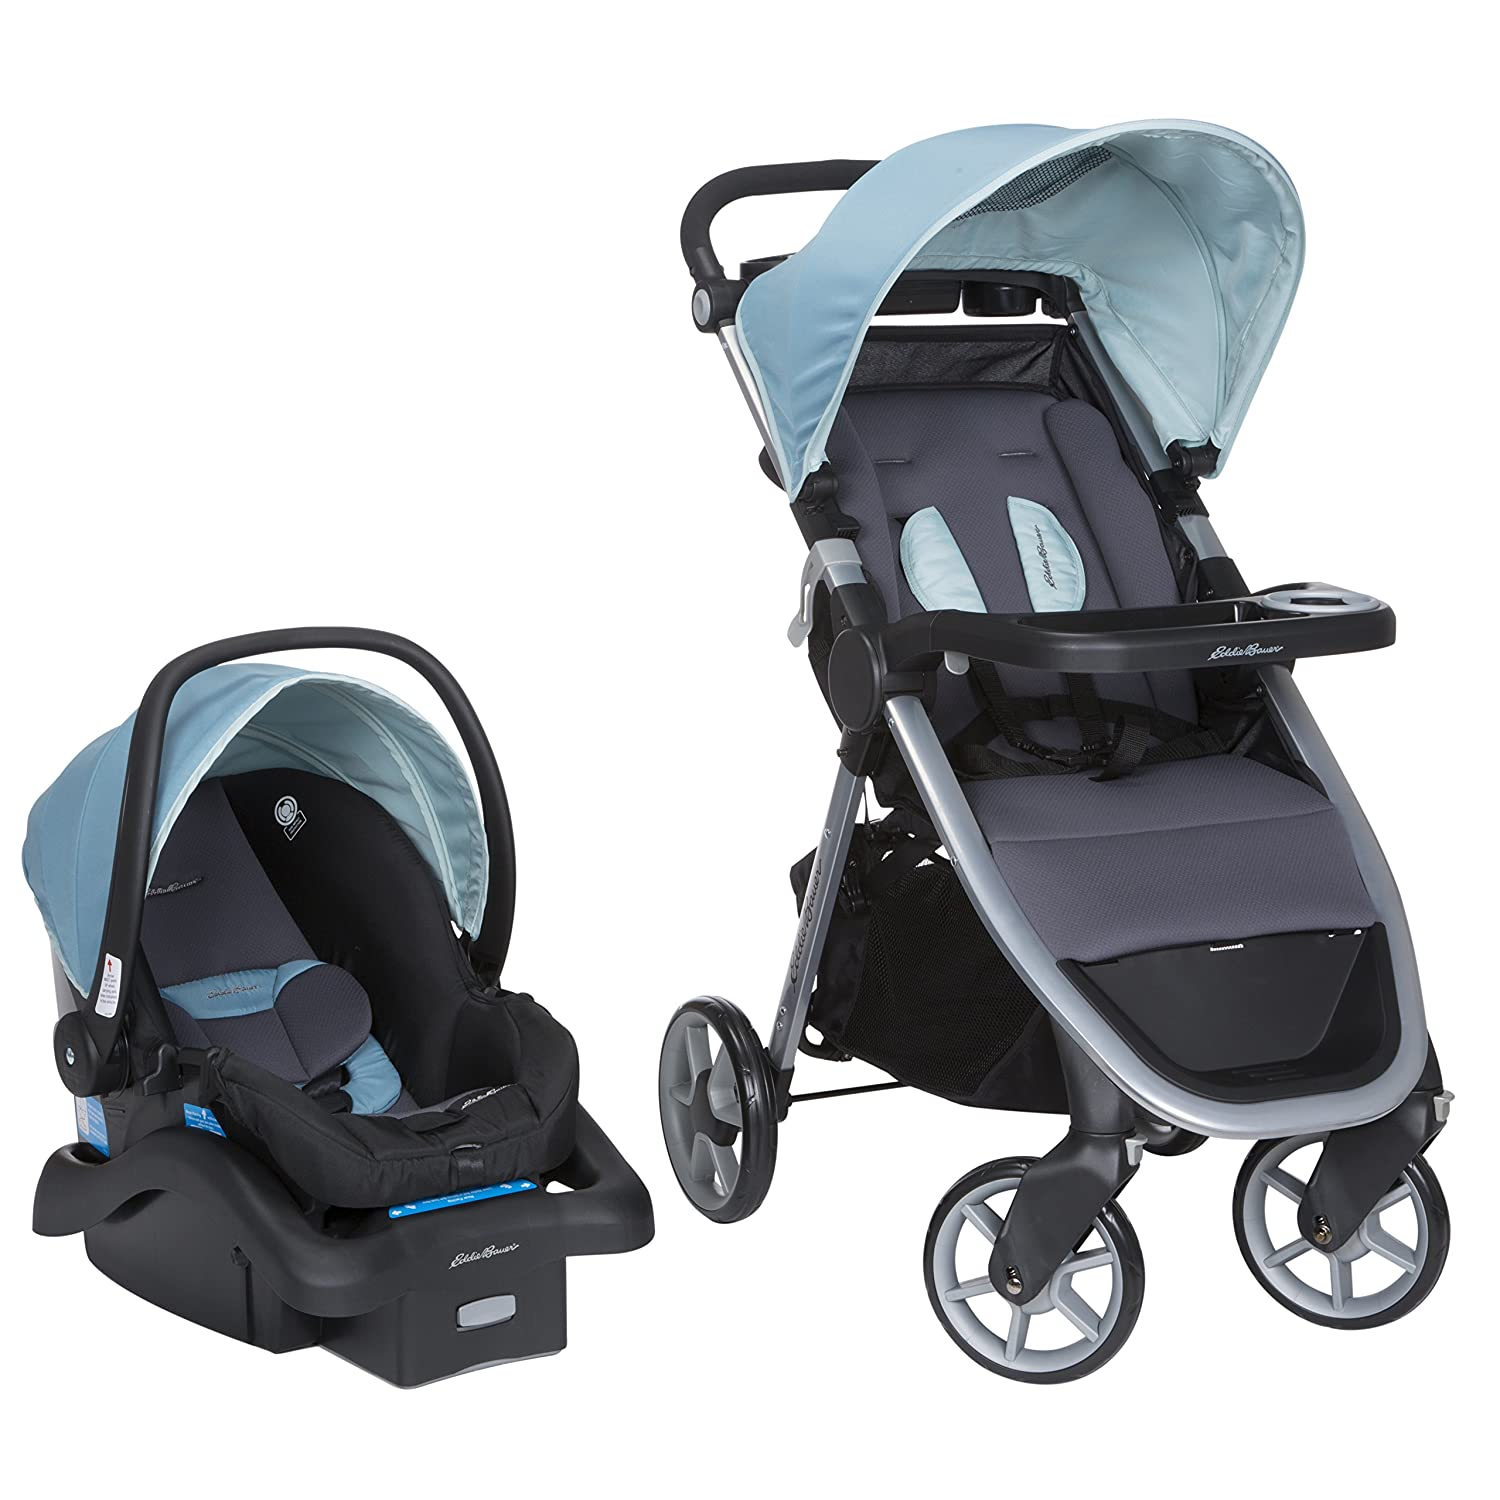 Amazon.com : Eddie Bauer Alpine 4 LX Travel System with SureFit 35 LT,  Dusty Cloud : Baby